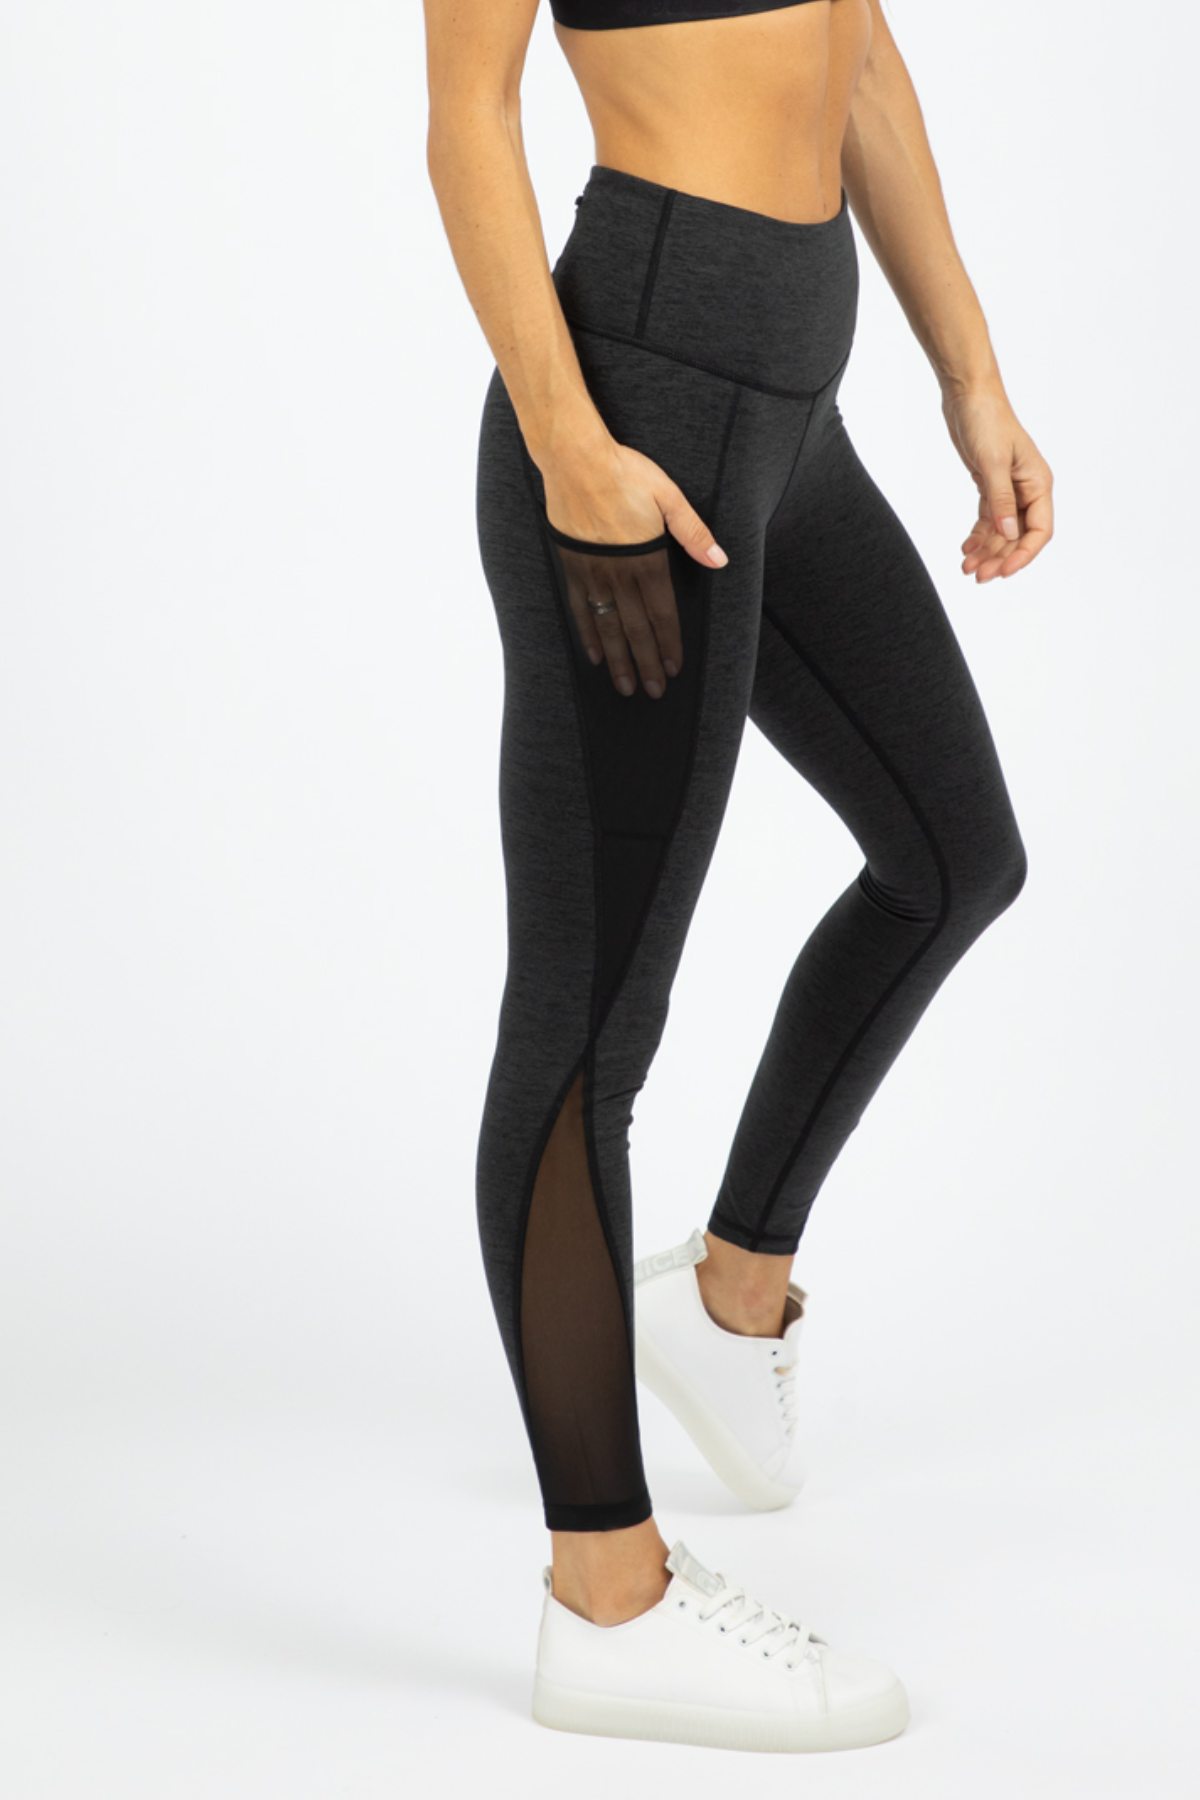 TWO TONE MESH LEGGINGS